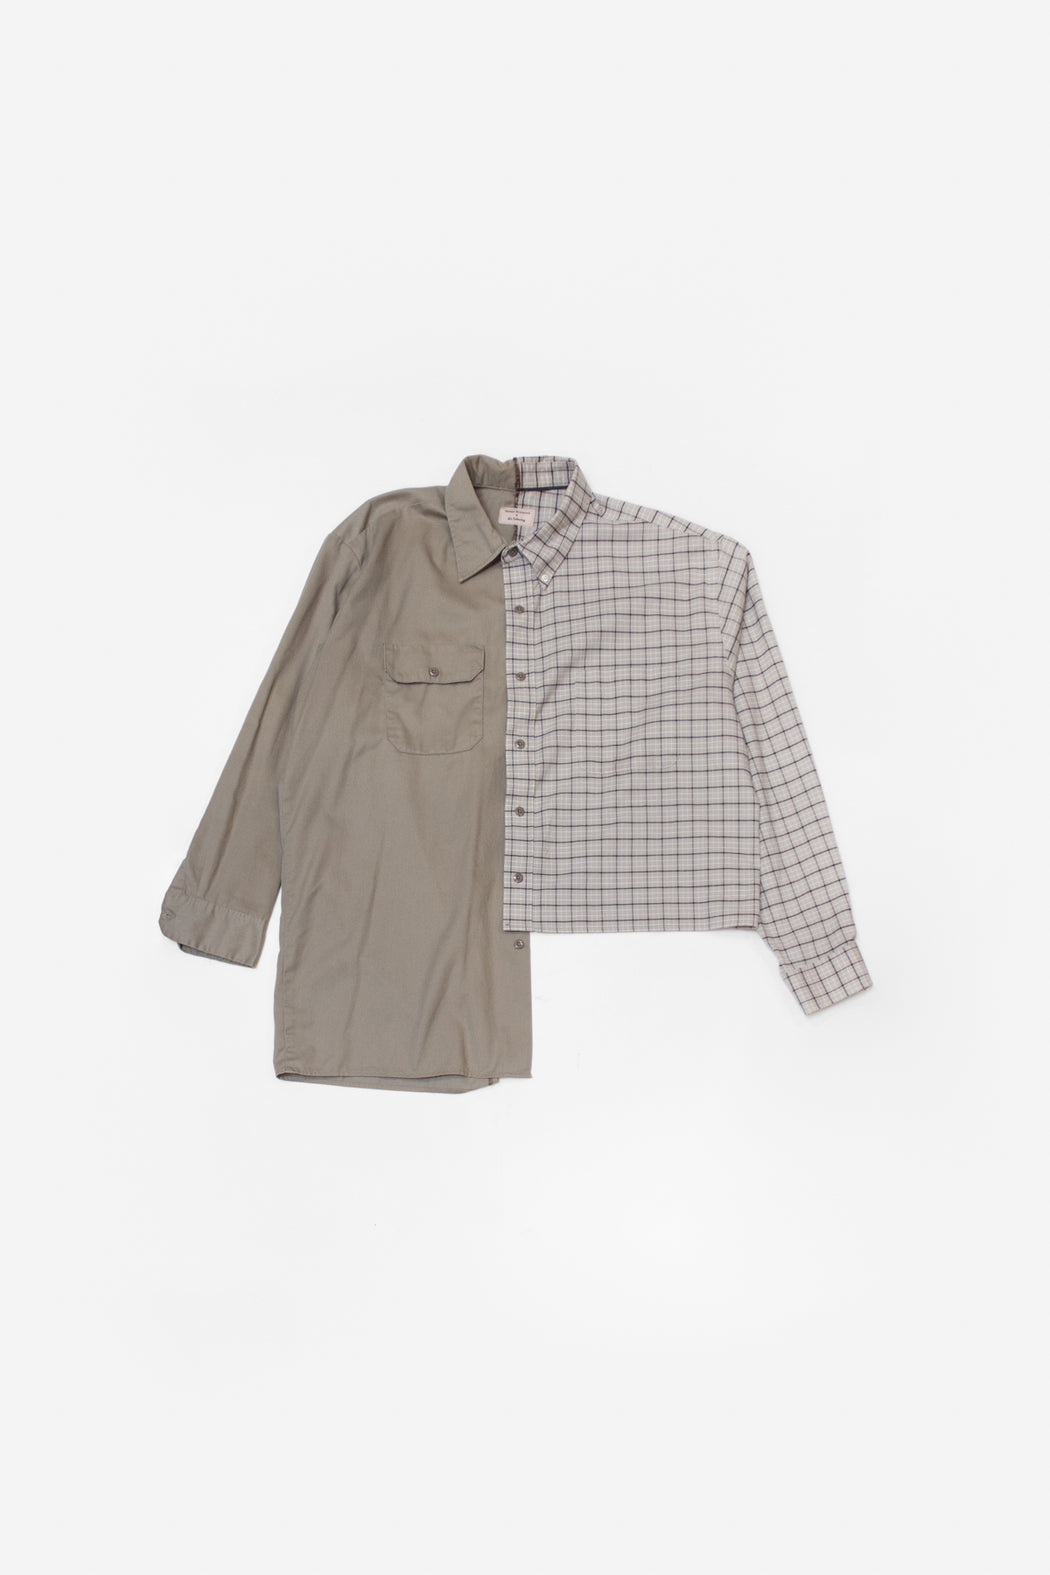 Re-Worked 2-Tone Button-Up | No. 13